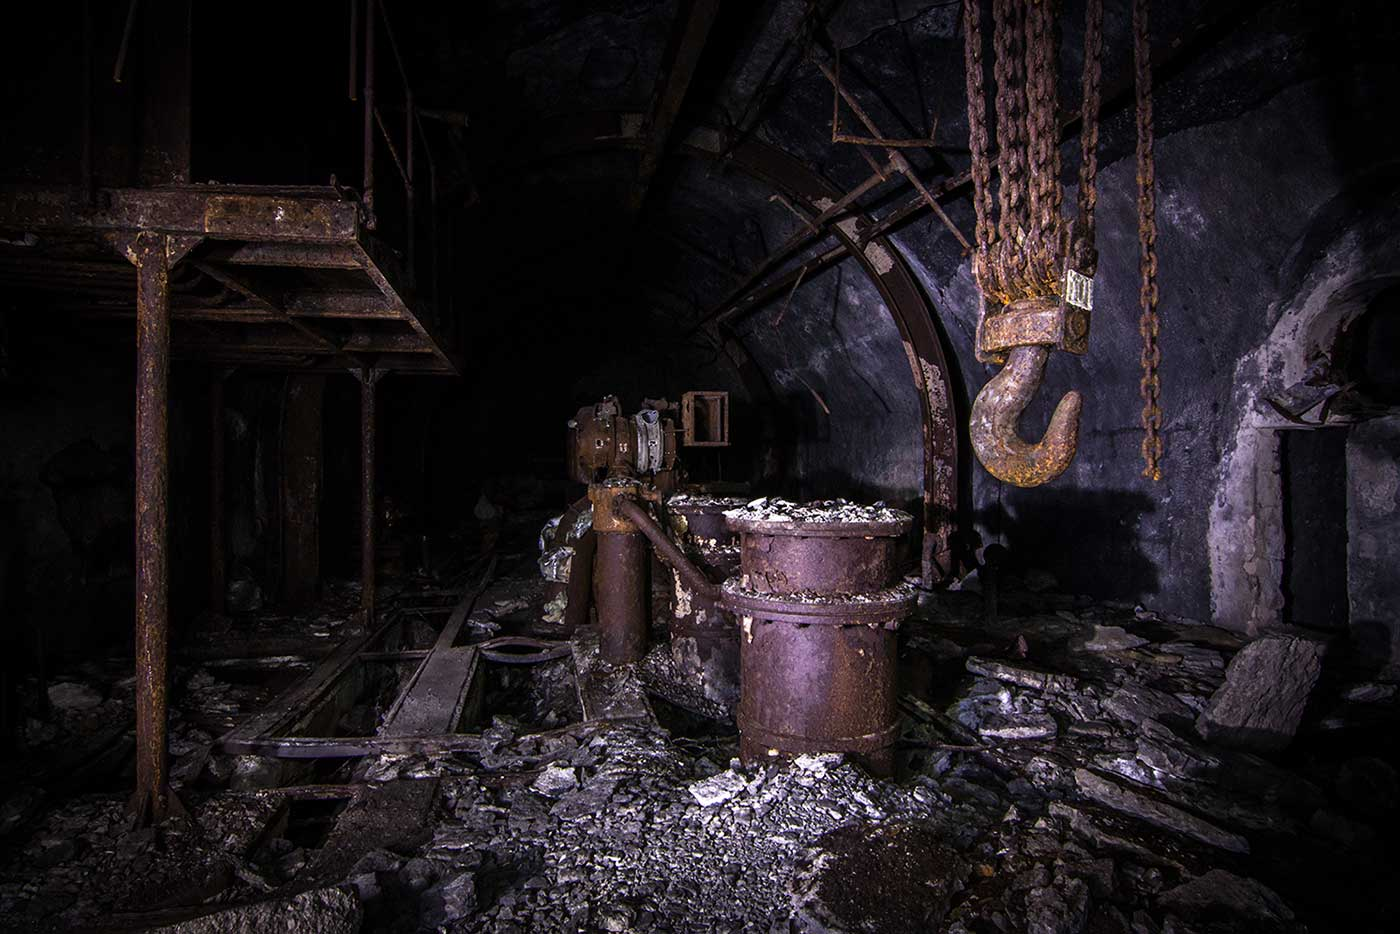 While the main galleries of the Željava Airbase have mostly been stripped bare, smaller side passages lead deeper into the mountain, to spaces that still contain rusted machinery and other original features.